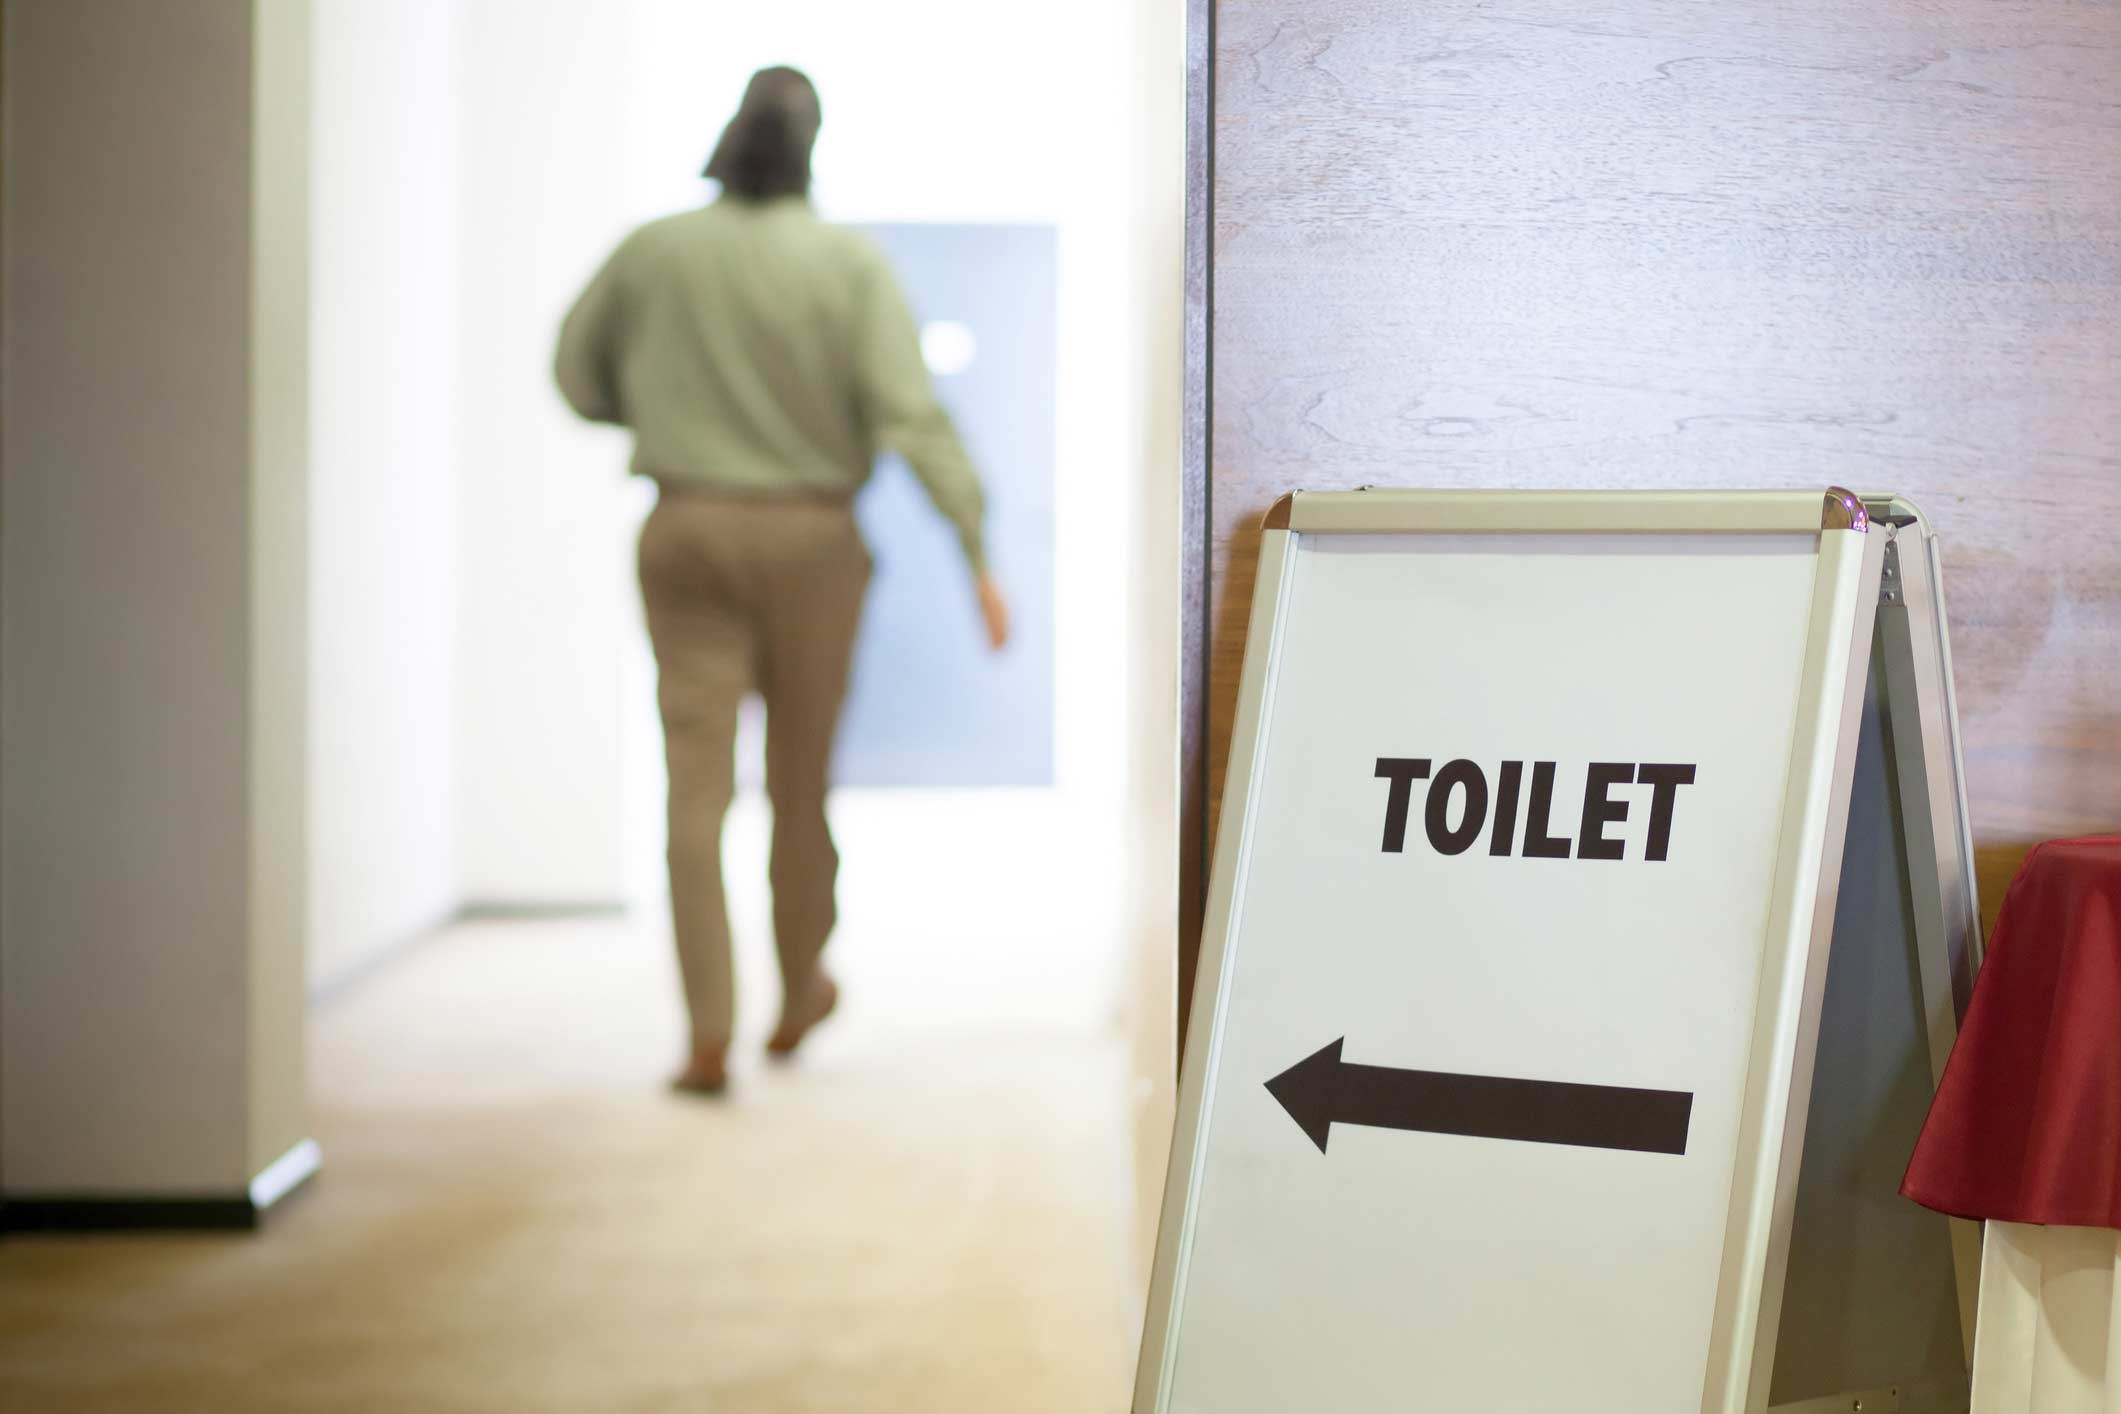 What Causes Chronic Diarrhea After Eating?